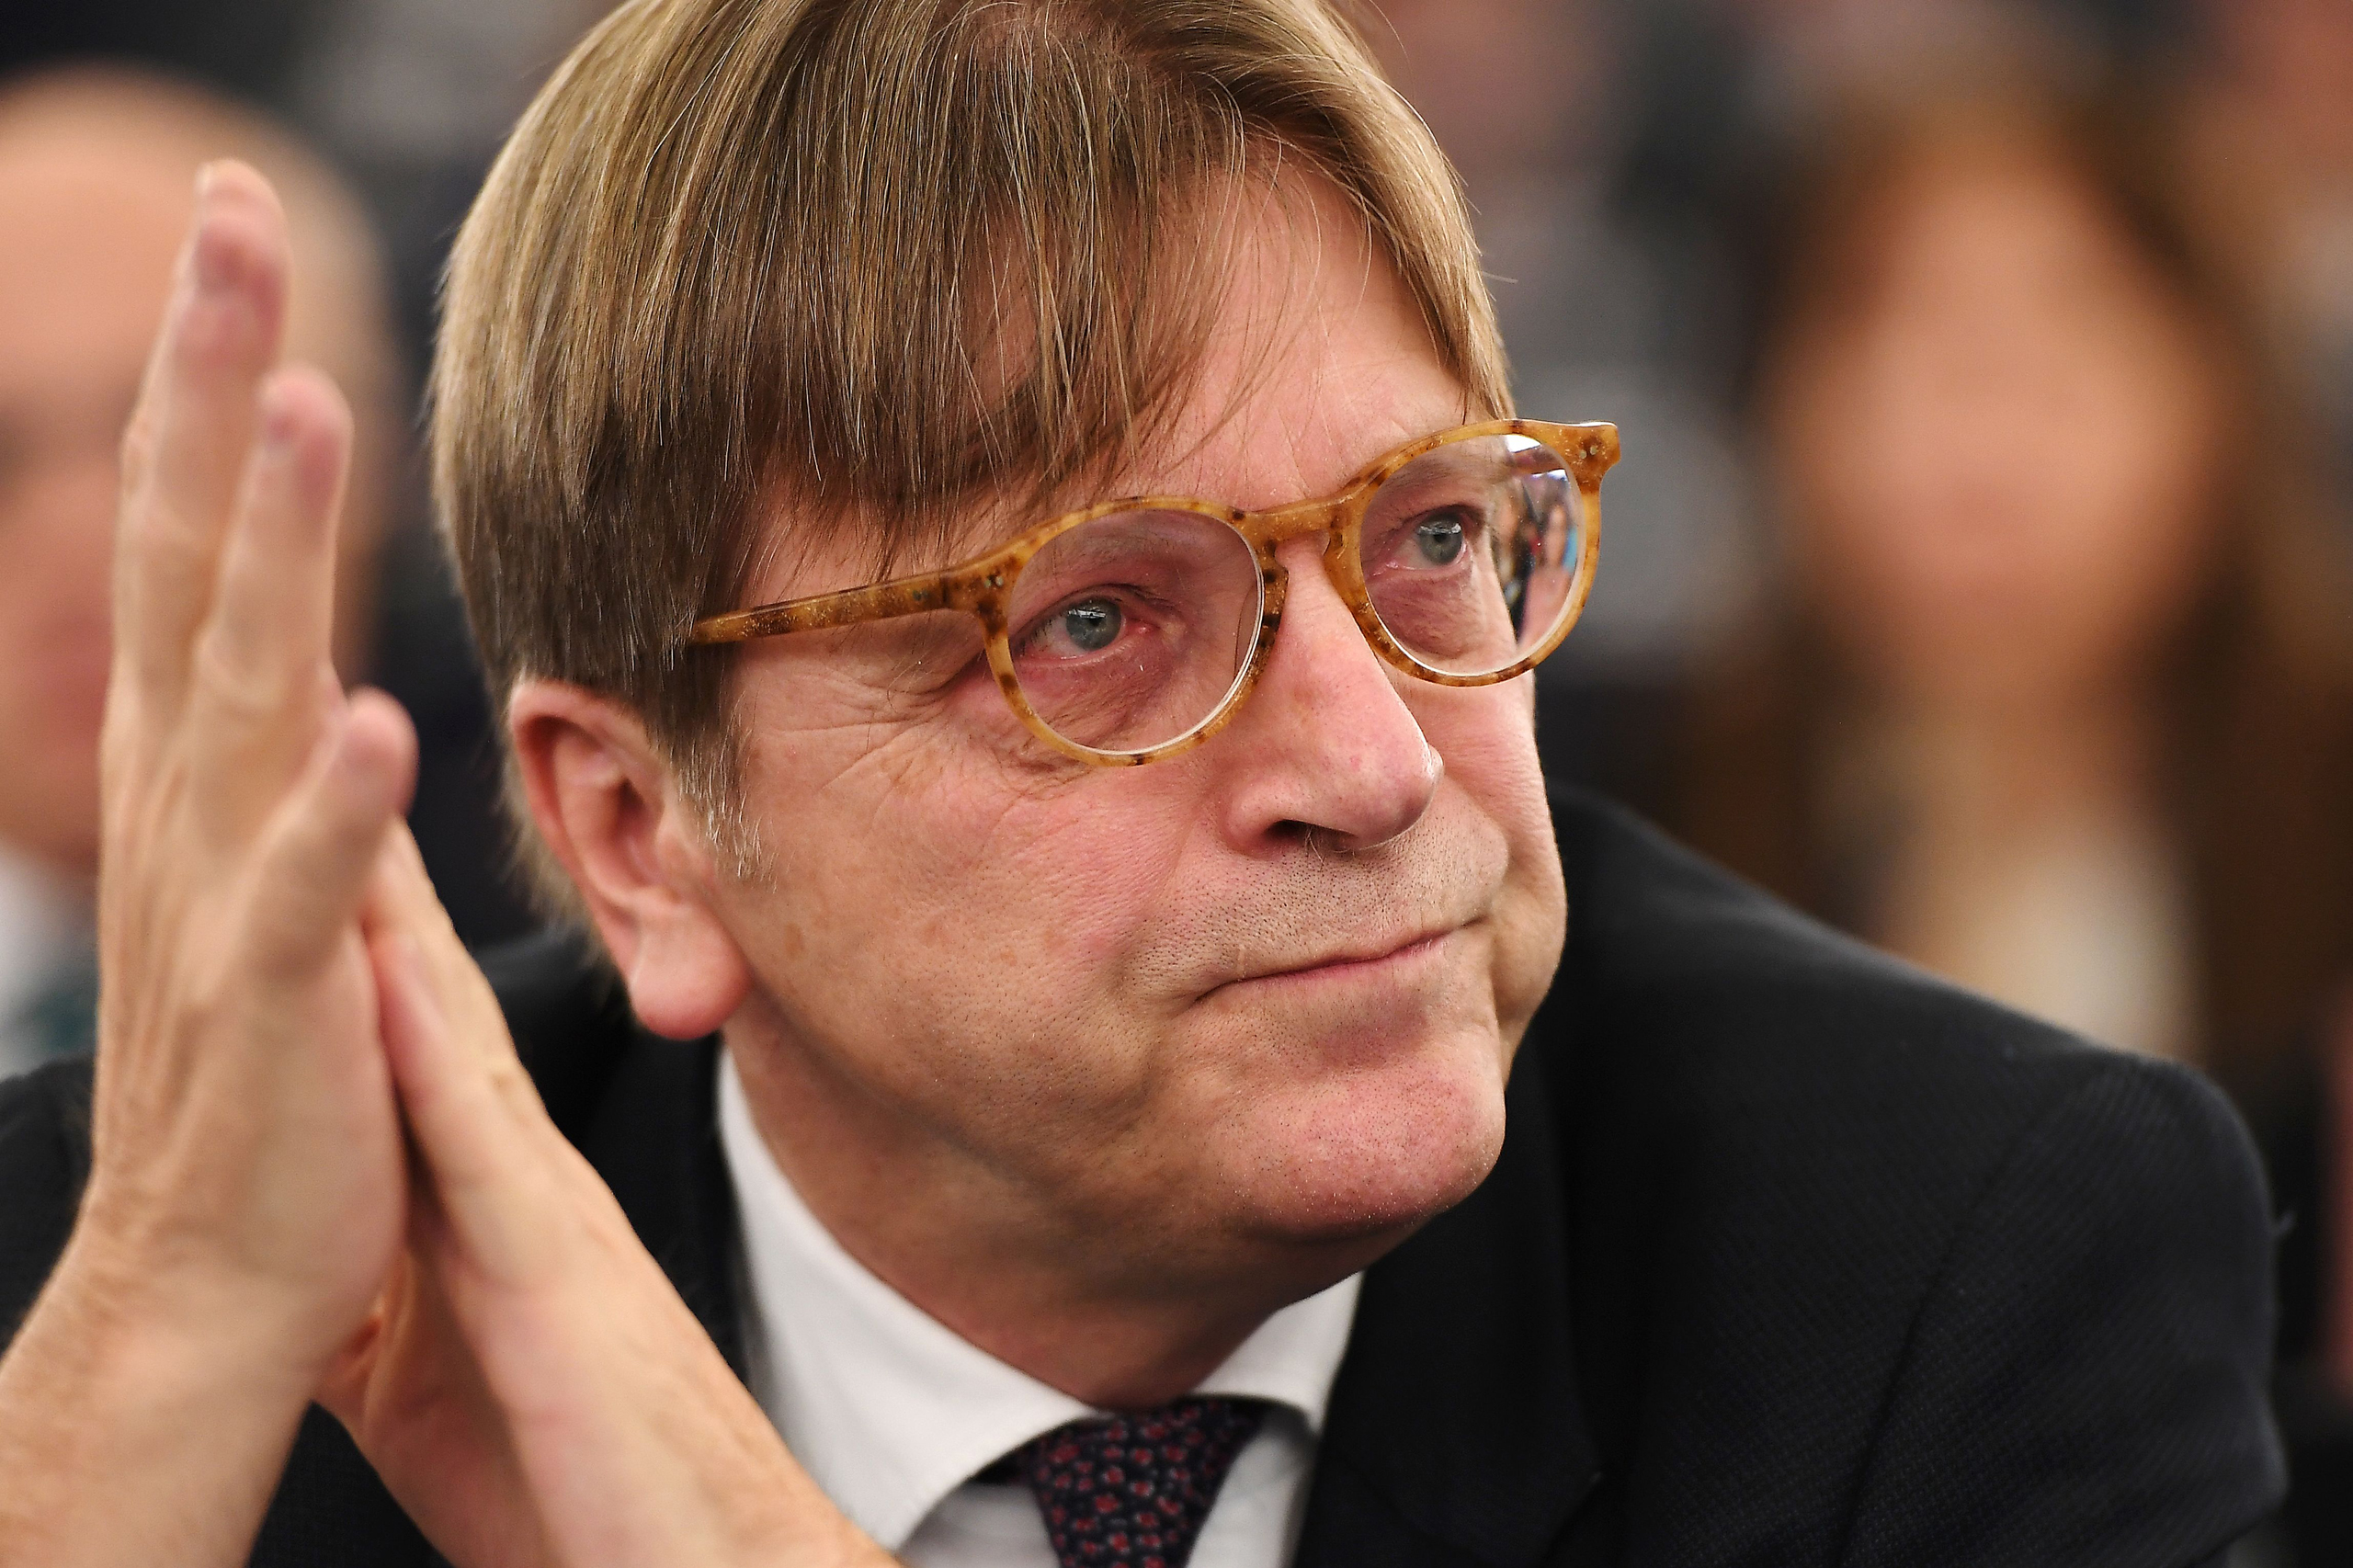 Alliance of liberals and Democrats for Europe (ALDE) group leader and Belgian member of the European Parliament Guy Verhofstadt looks on during the election for the office of the President at the European Parliament in Strasbourg, eastern France, on Jan. 17, 2016.